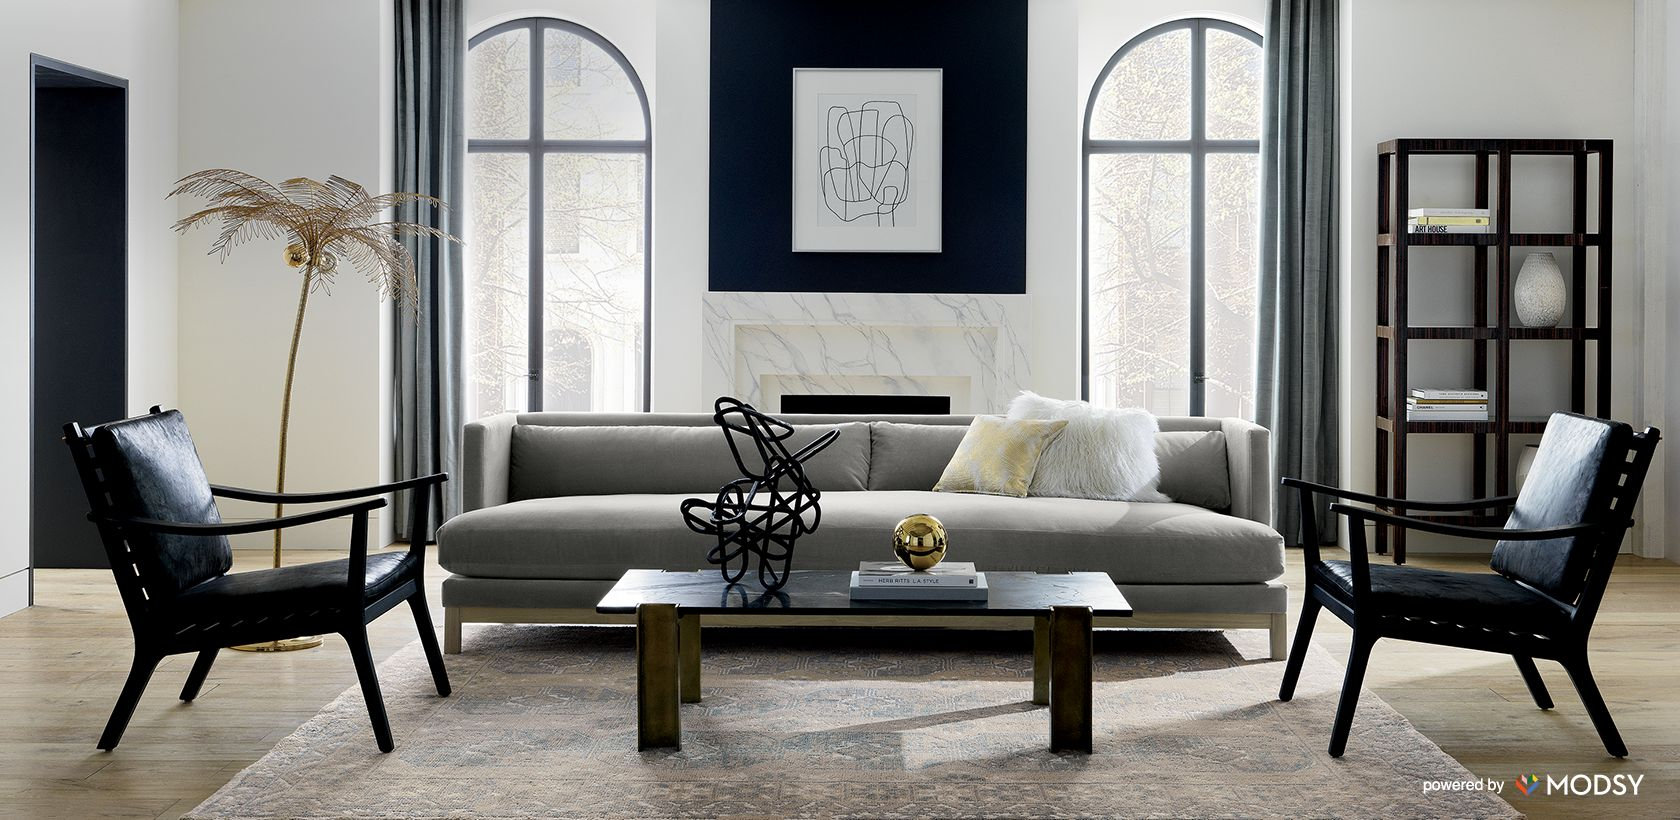 Modern and Unique Furniture Design CB2